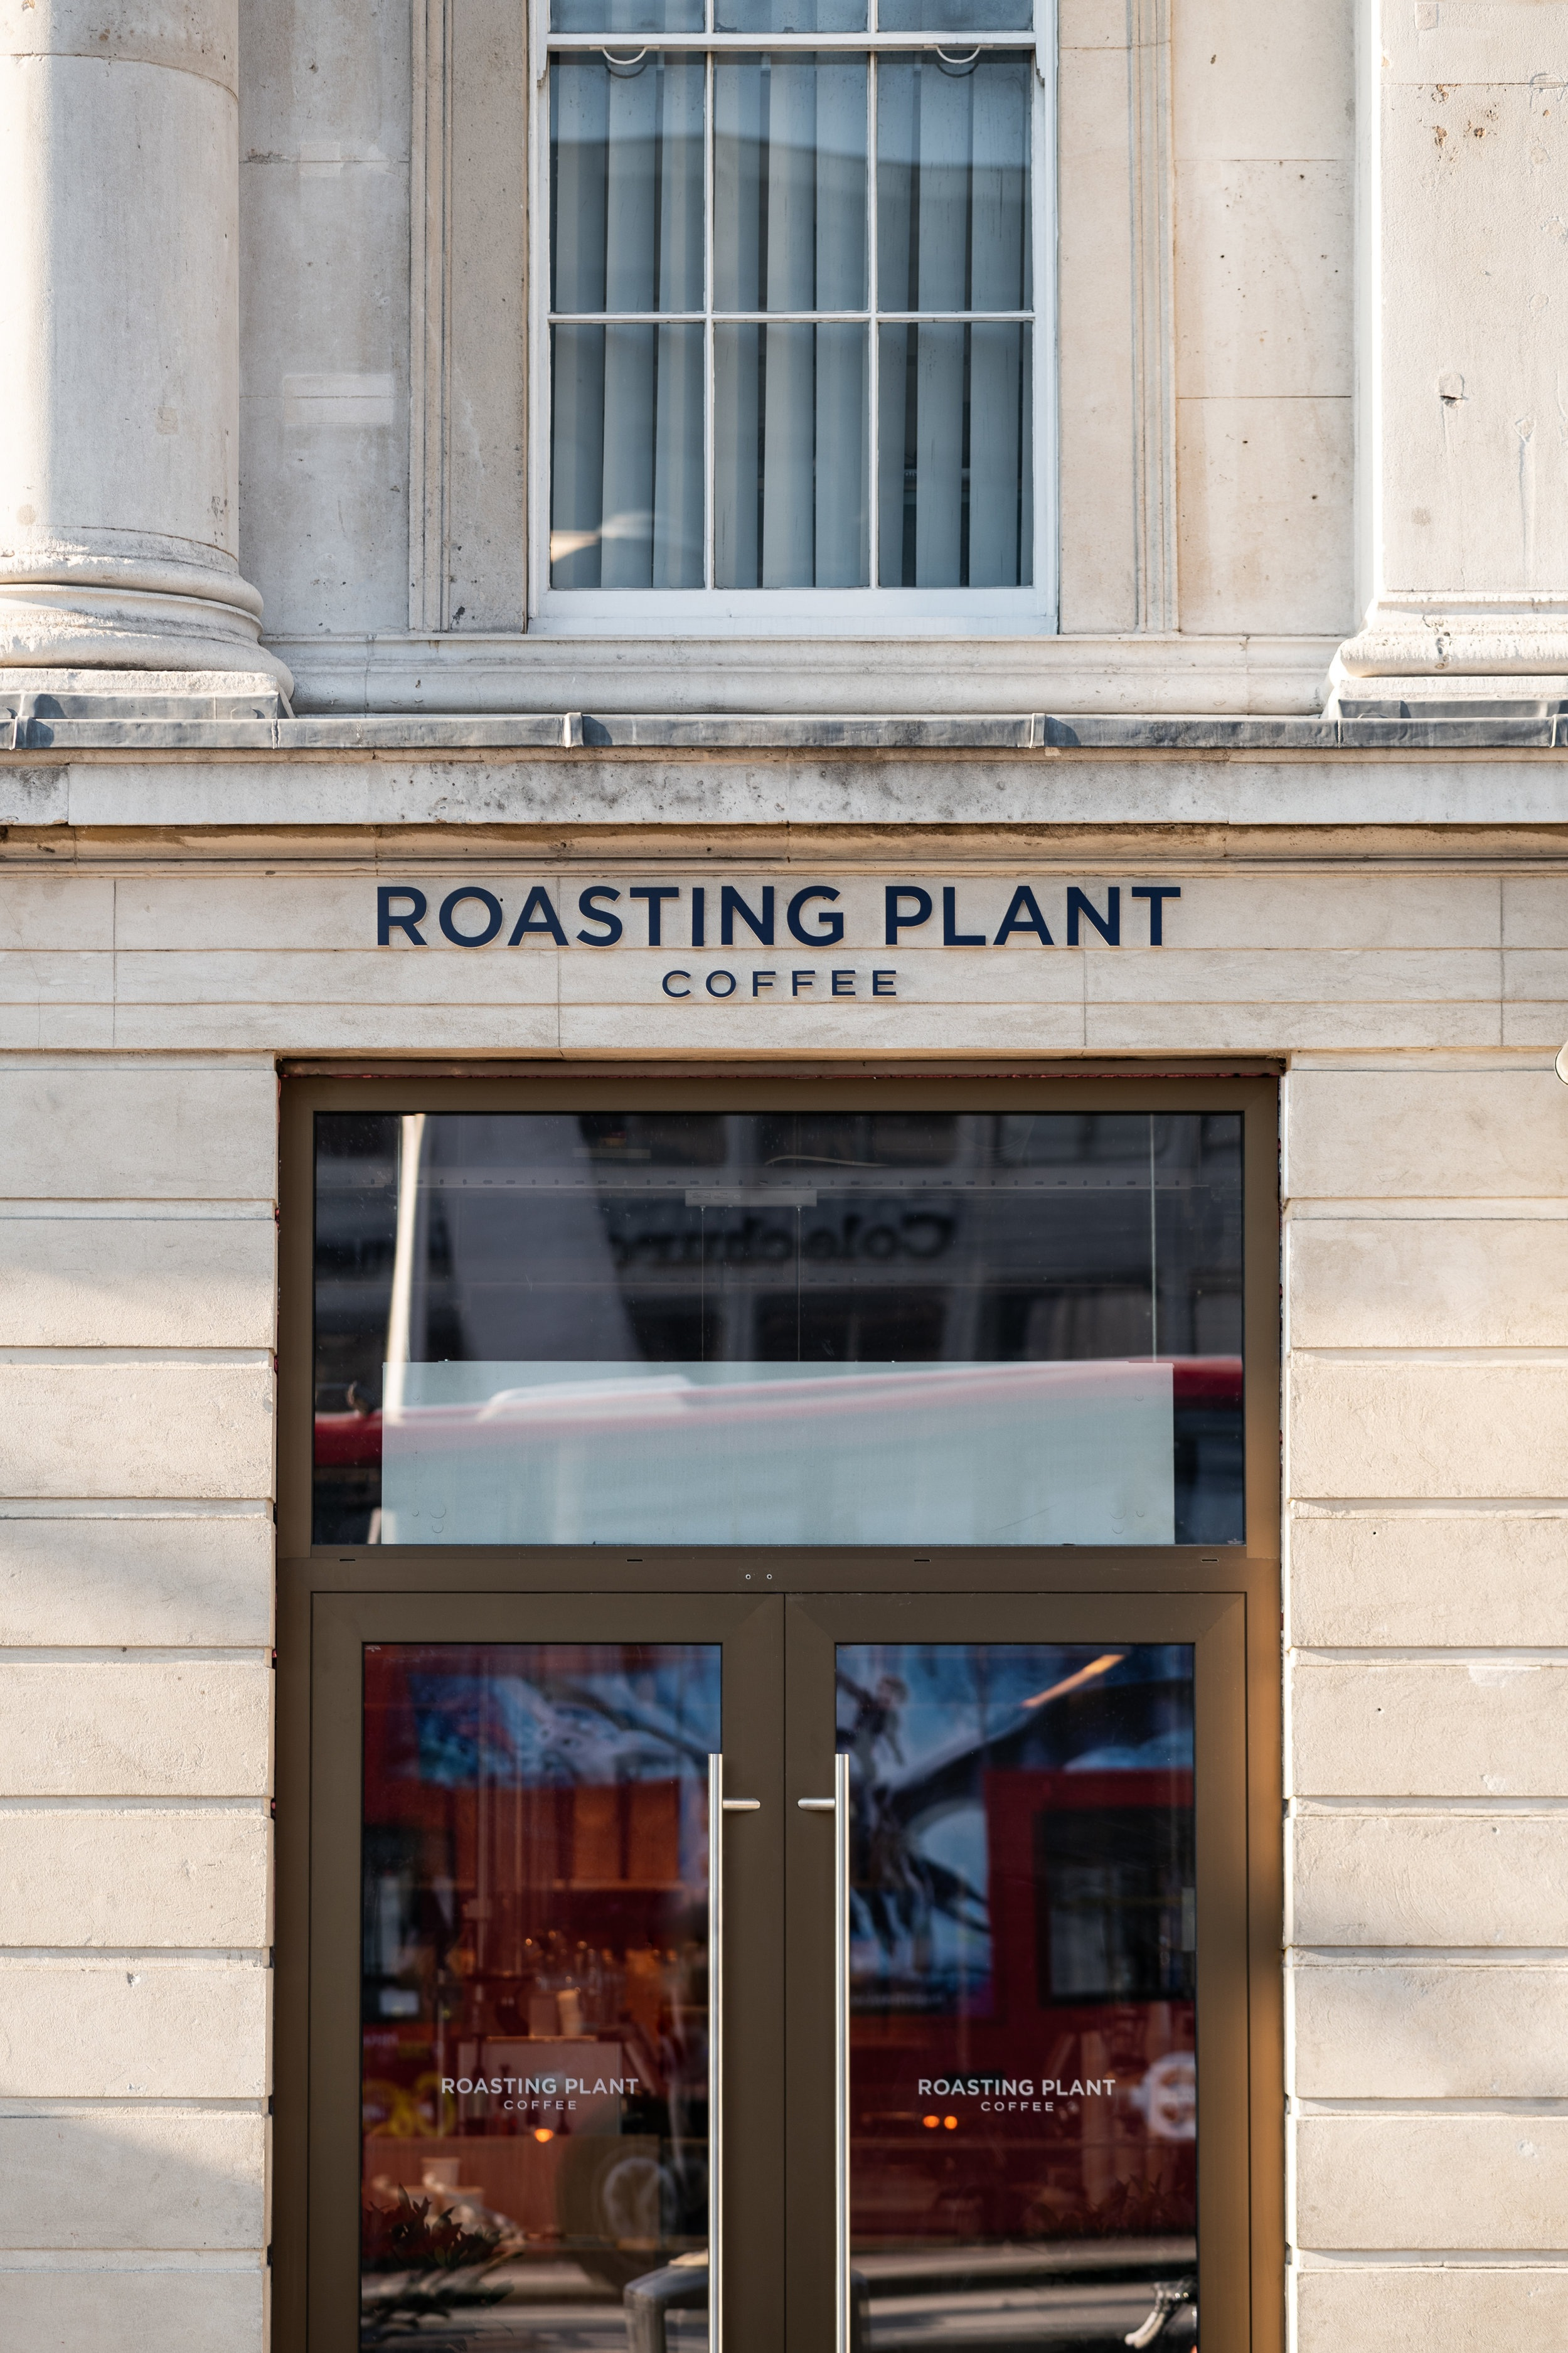 The+Roasting+Plant+%28photo+by+Tom+Bird%29-33-Edit.jpg